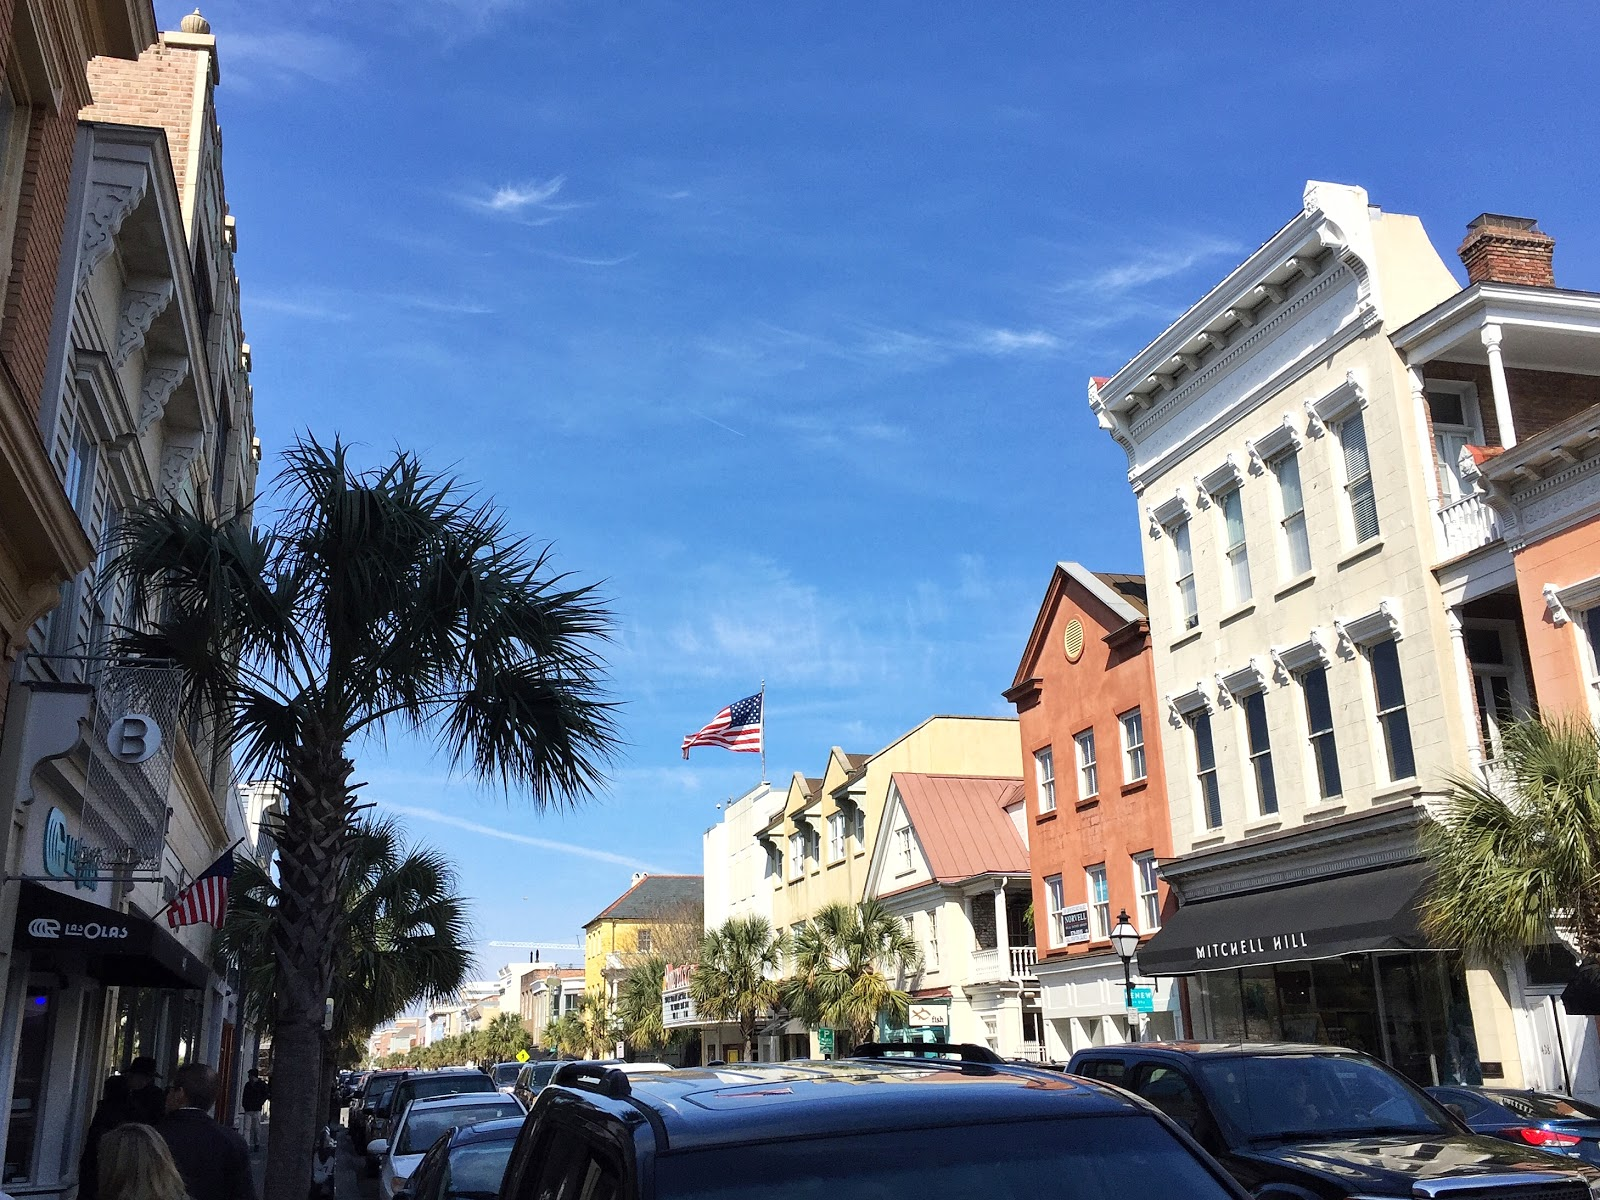 charleston south carolina upper king street downtown charleston sunny beautiful clear sky